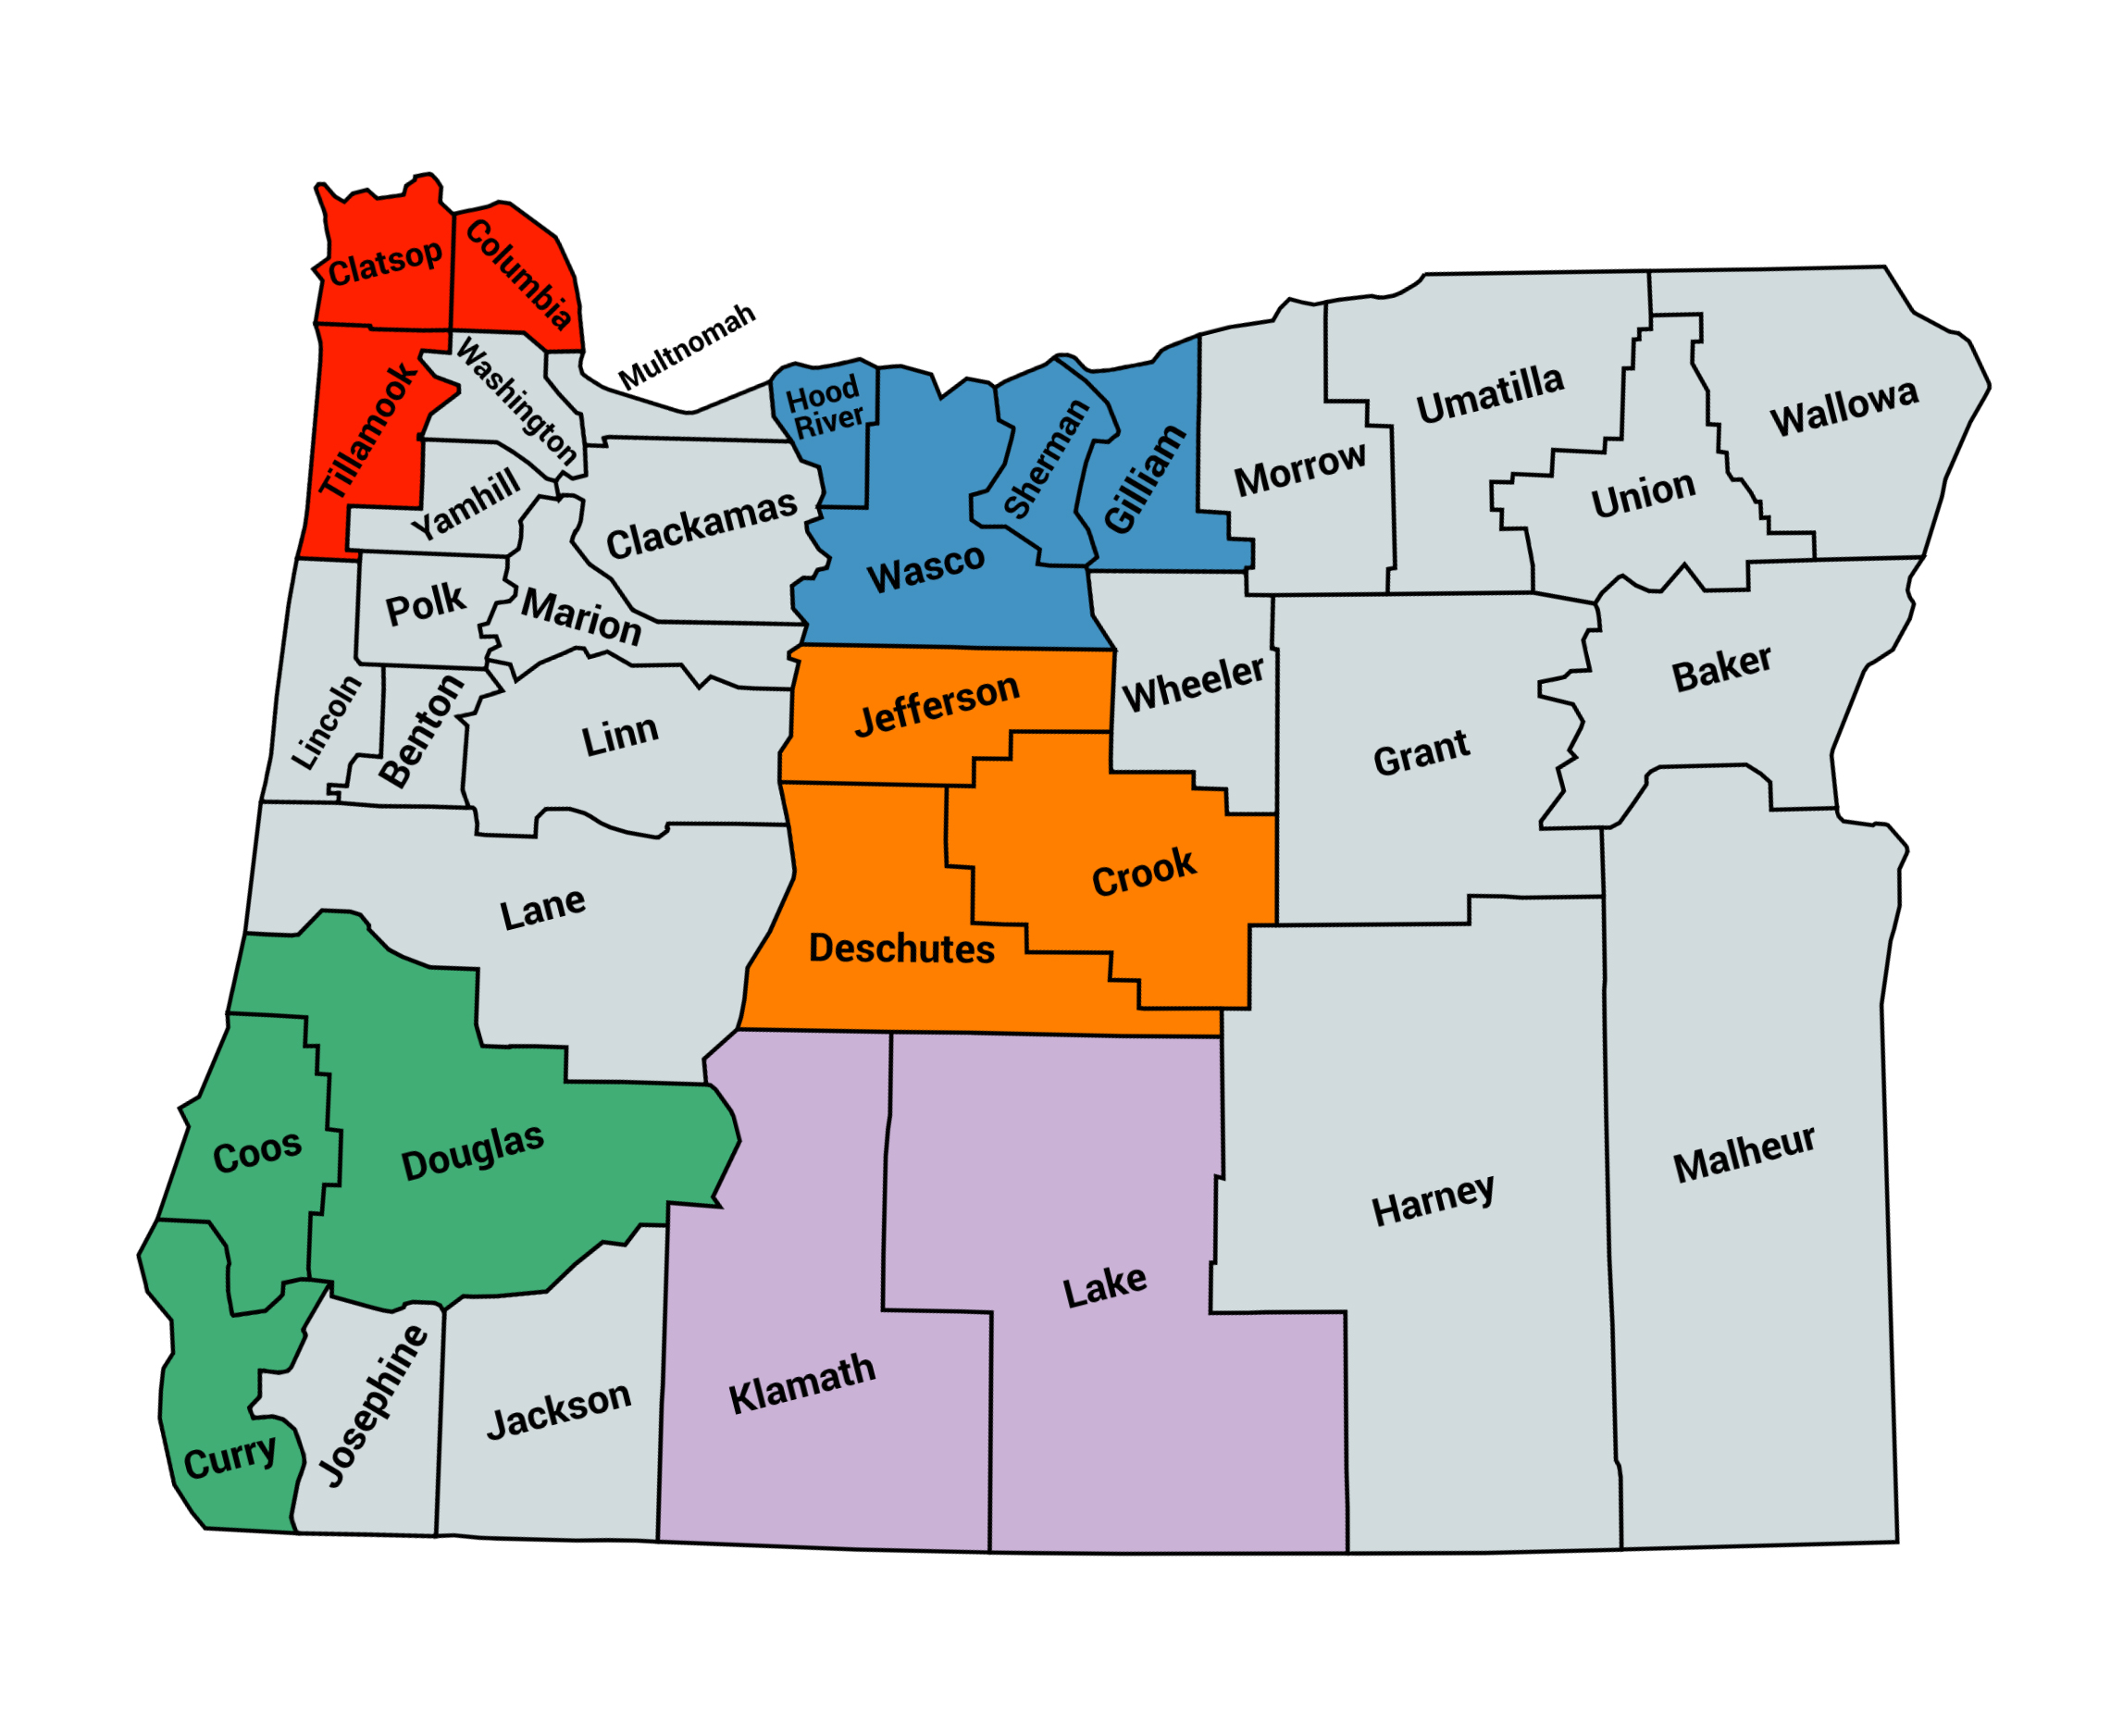 Map showing the liaison regions in Oregon for the Hub